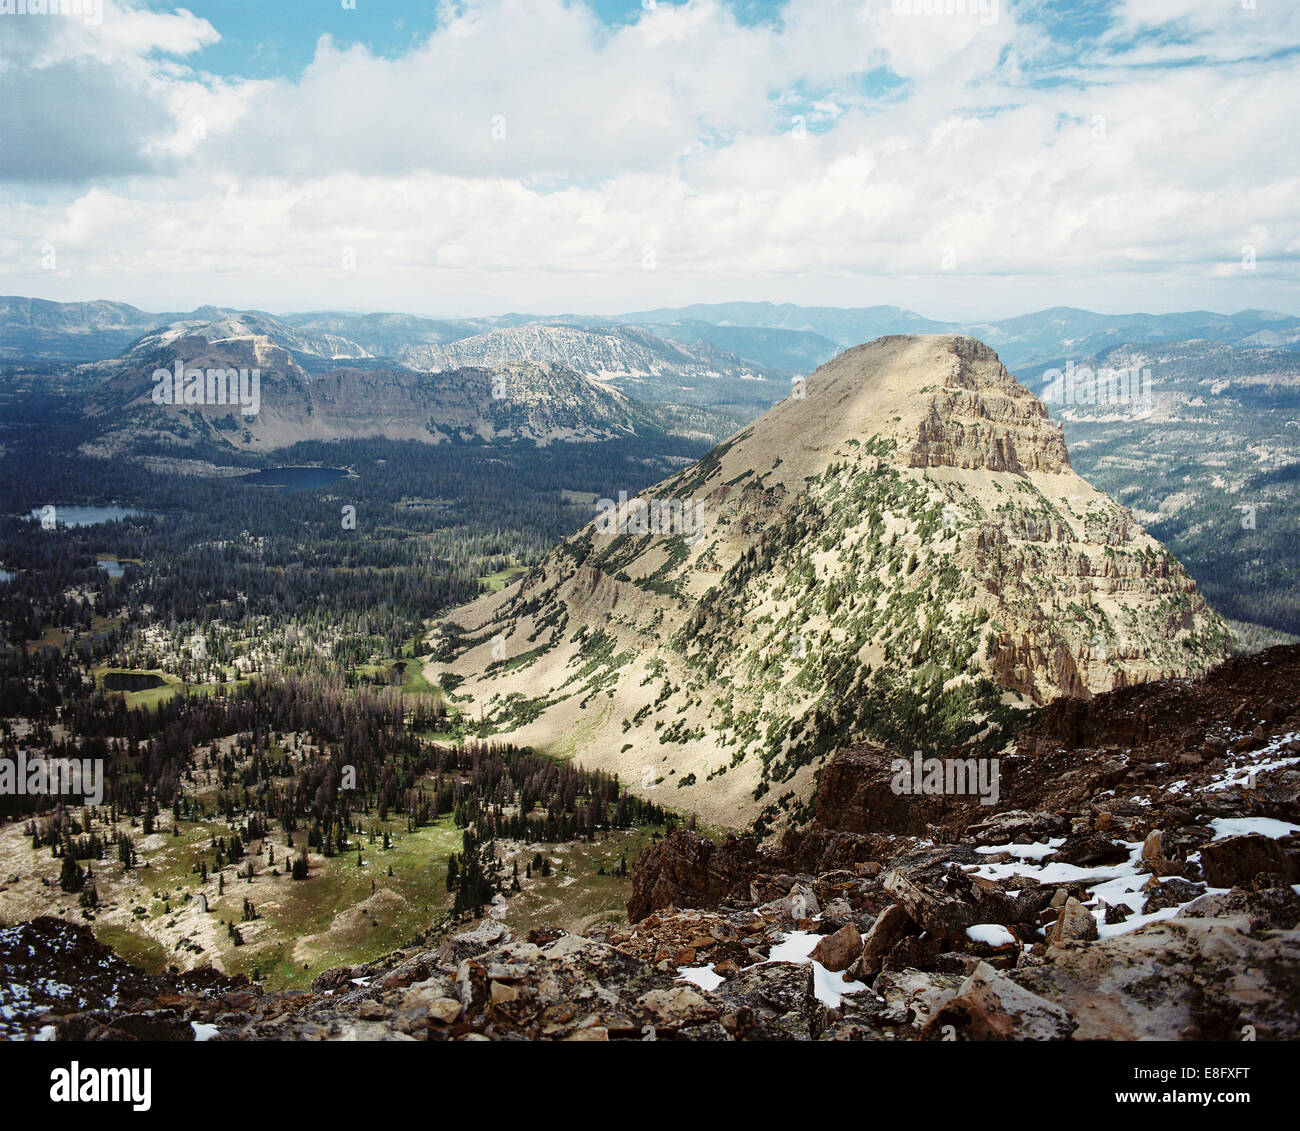 USA, Utah, Aerial view of mountains and valleys from Bald Mountain Stock Photo